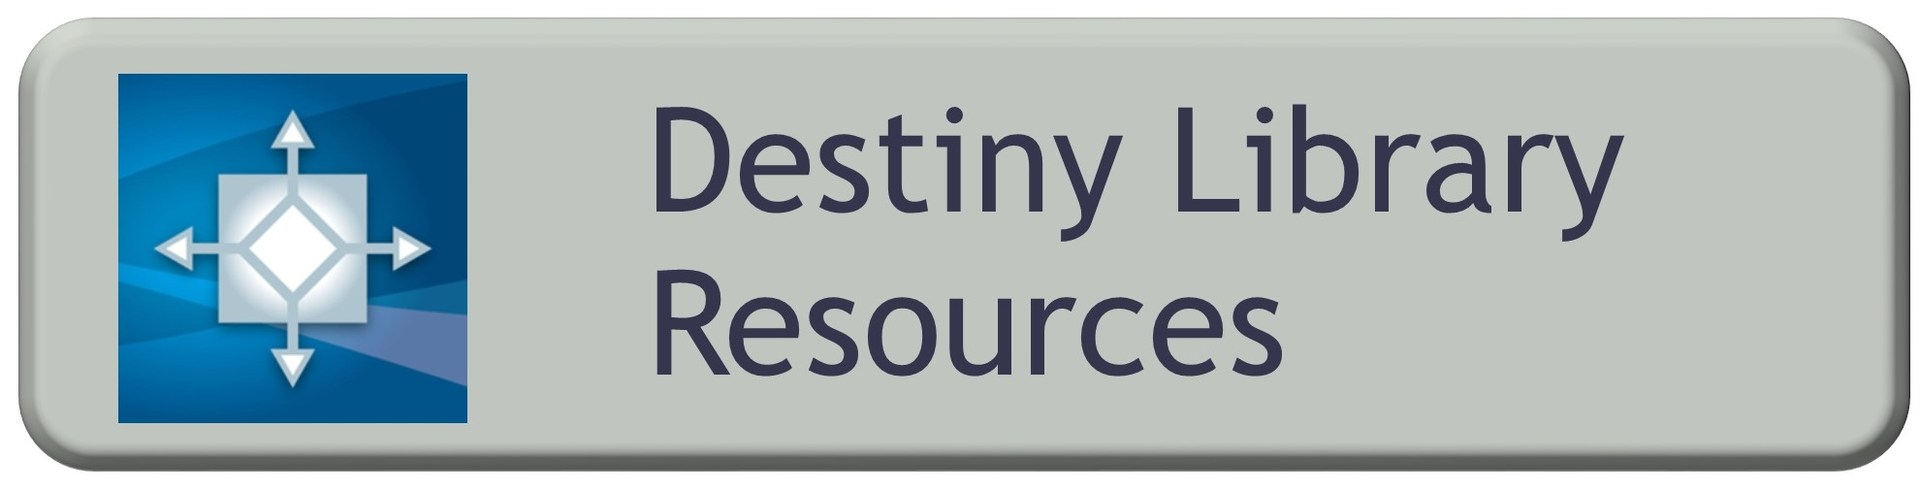 Destiny Library Resources